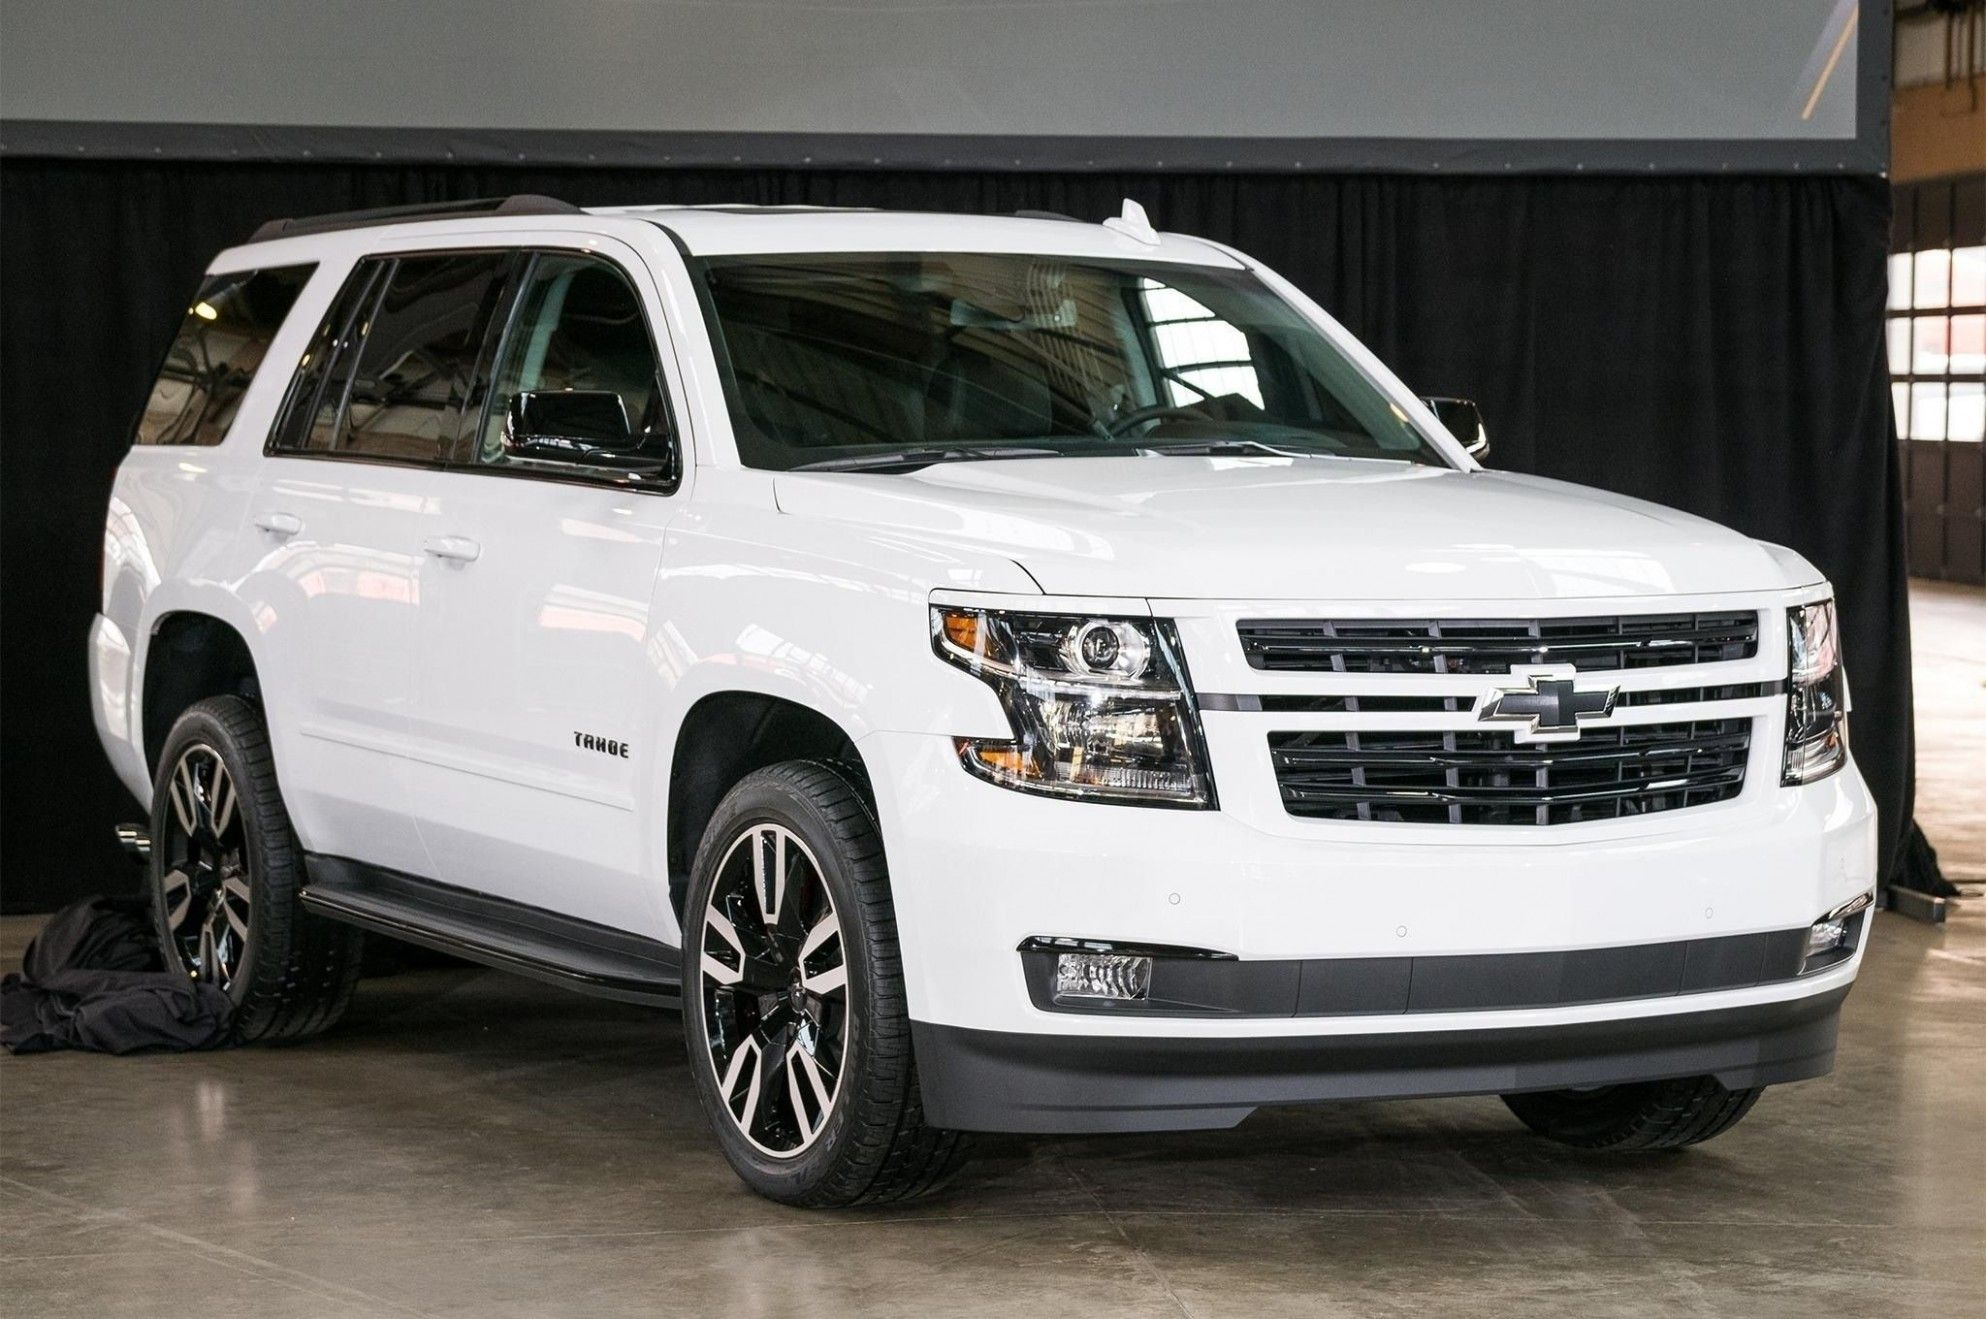 Pin By Chad Cordill On Chevy Tahoe 2020 Chevy Suburban Chevy